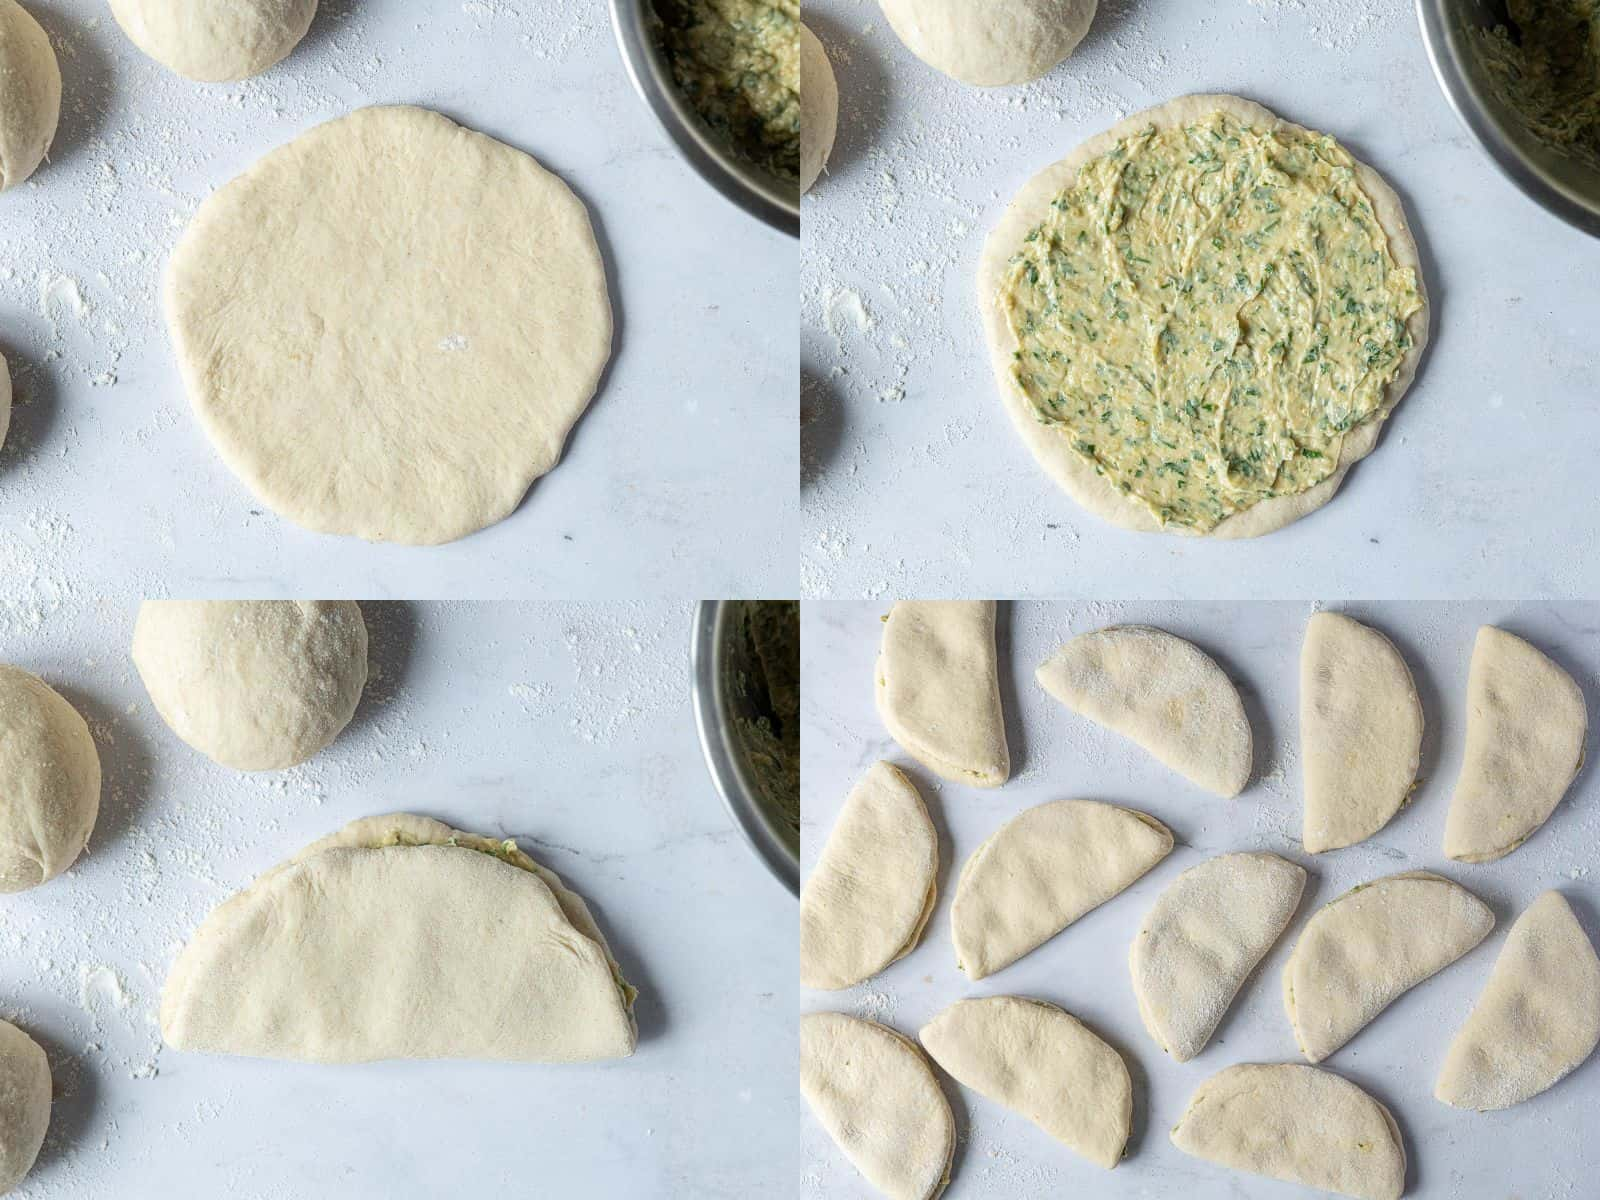 A four image collage of rolling out the balls of dough, spreading on the filling and folding the rounds of dough.